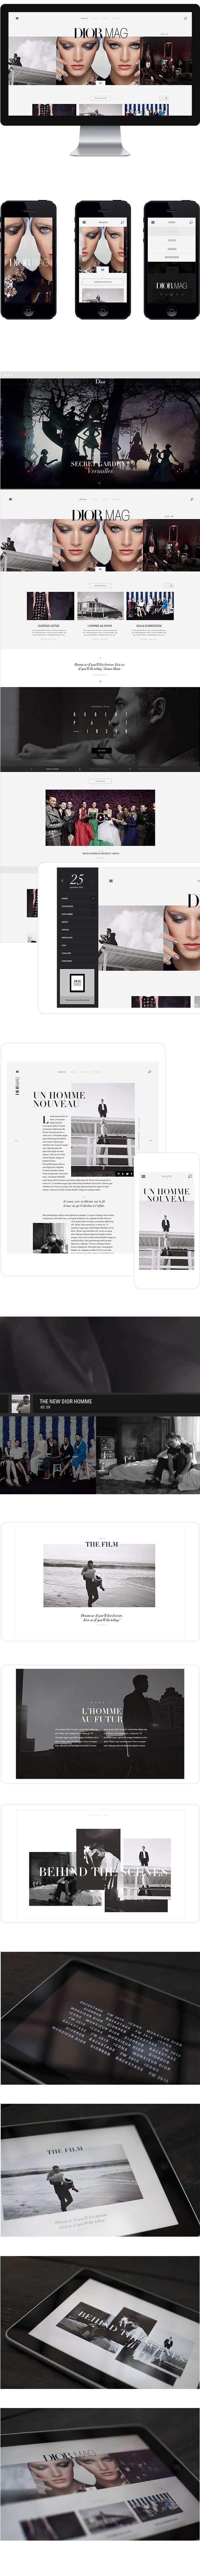 Dior Mag by Jonathan Da Costa, via Behance